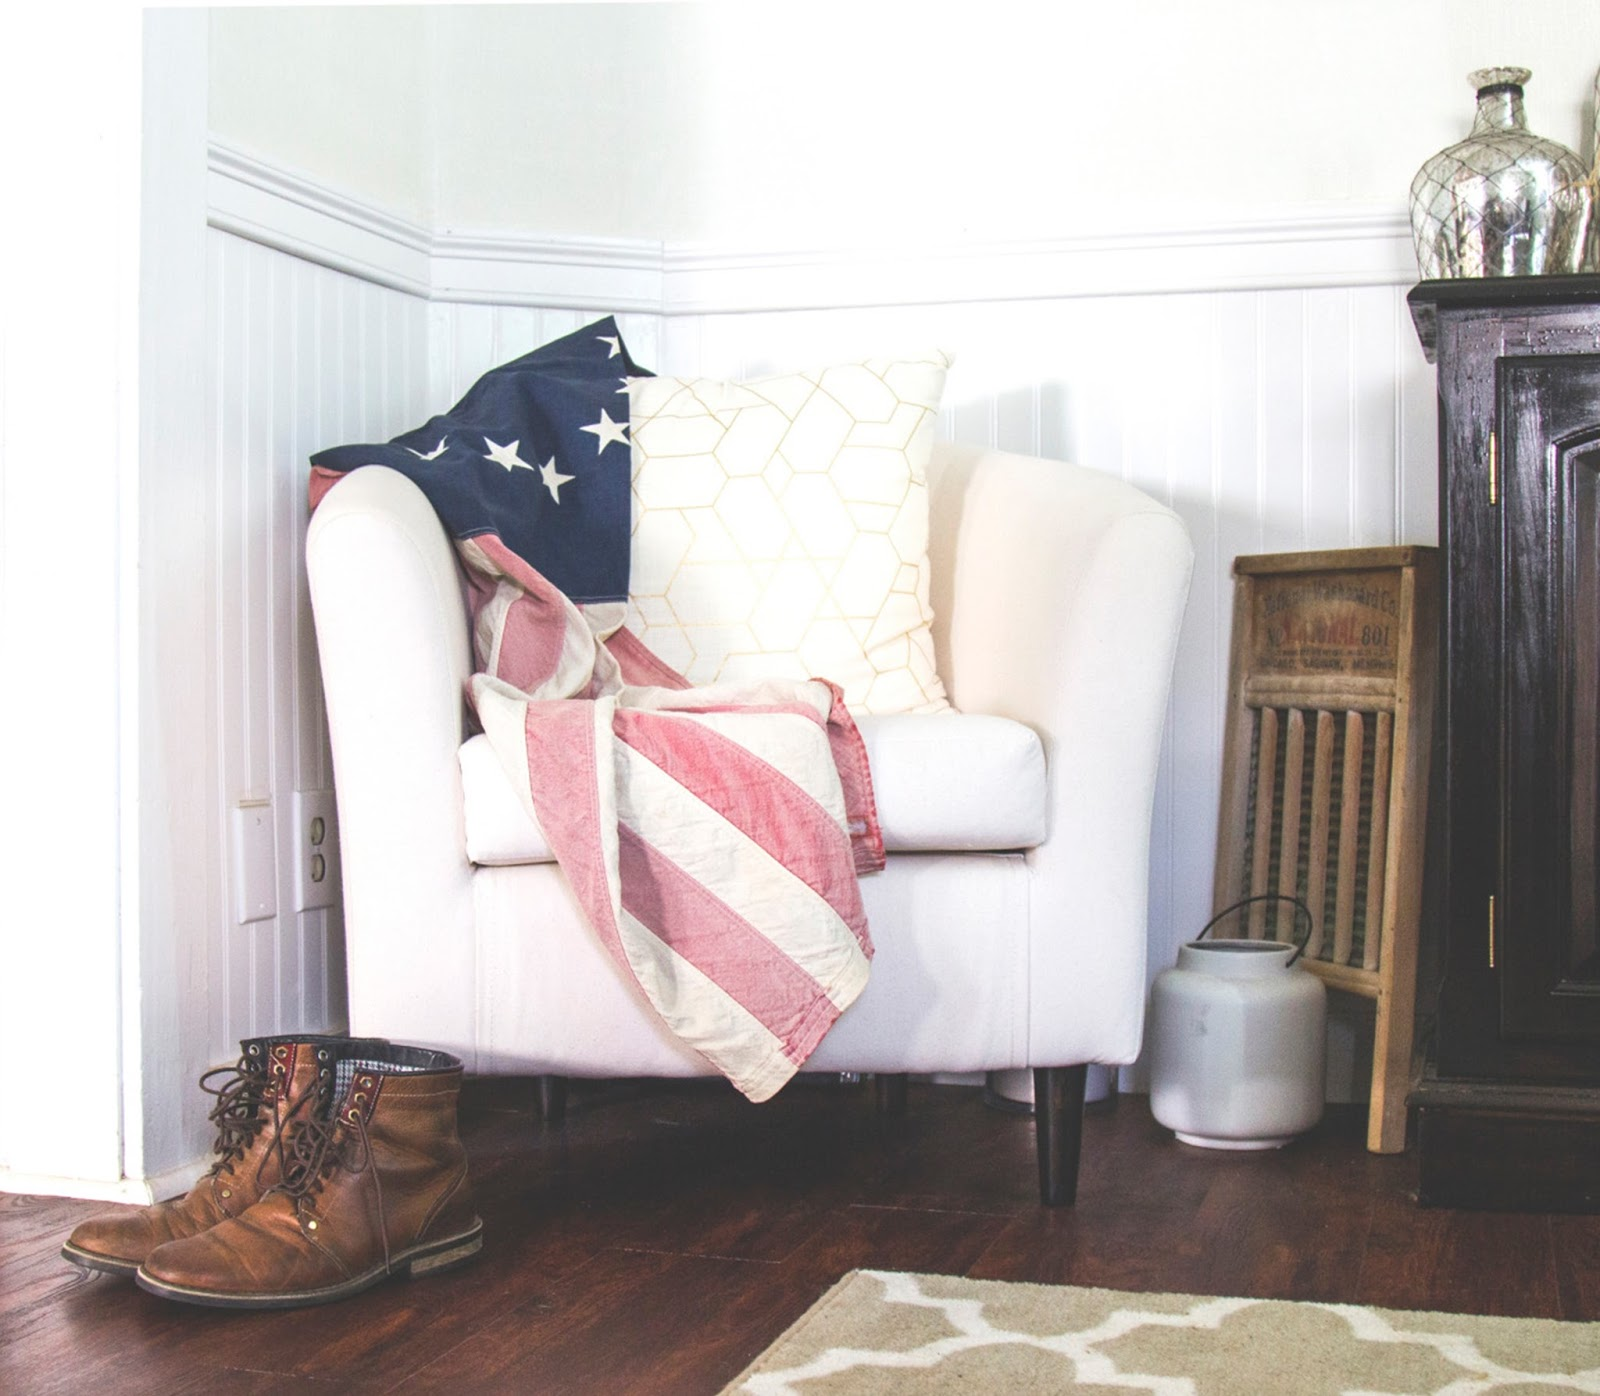 Chair with American flag and boots - interior styling mistakes - motherdistracted.co.uk